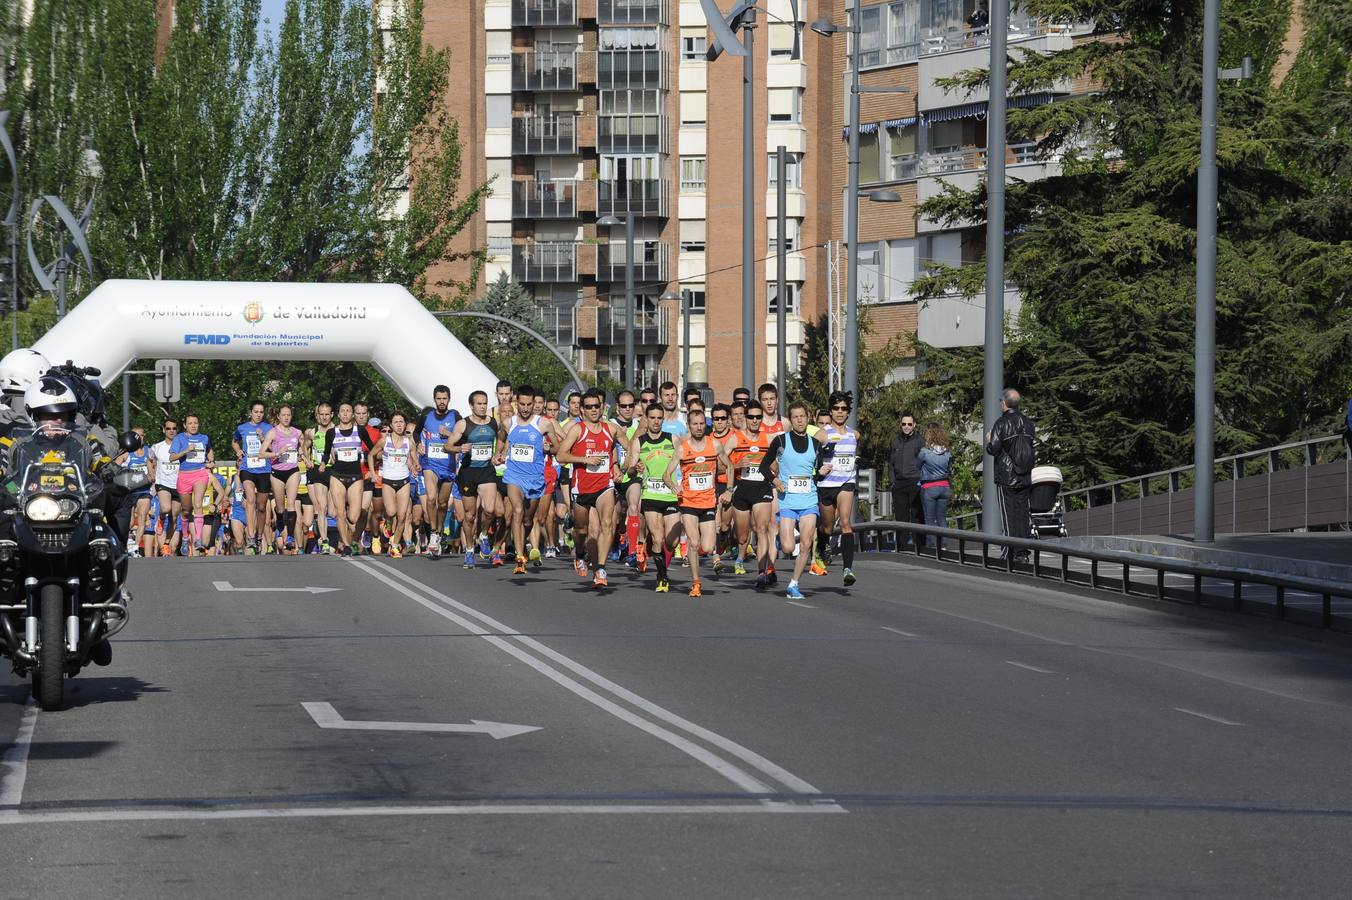 Carrera 'Rexona Street Run' (1/3)